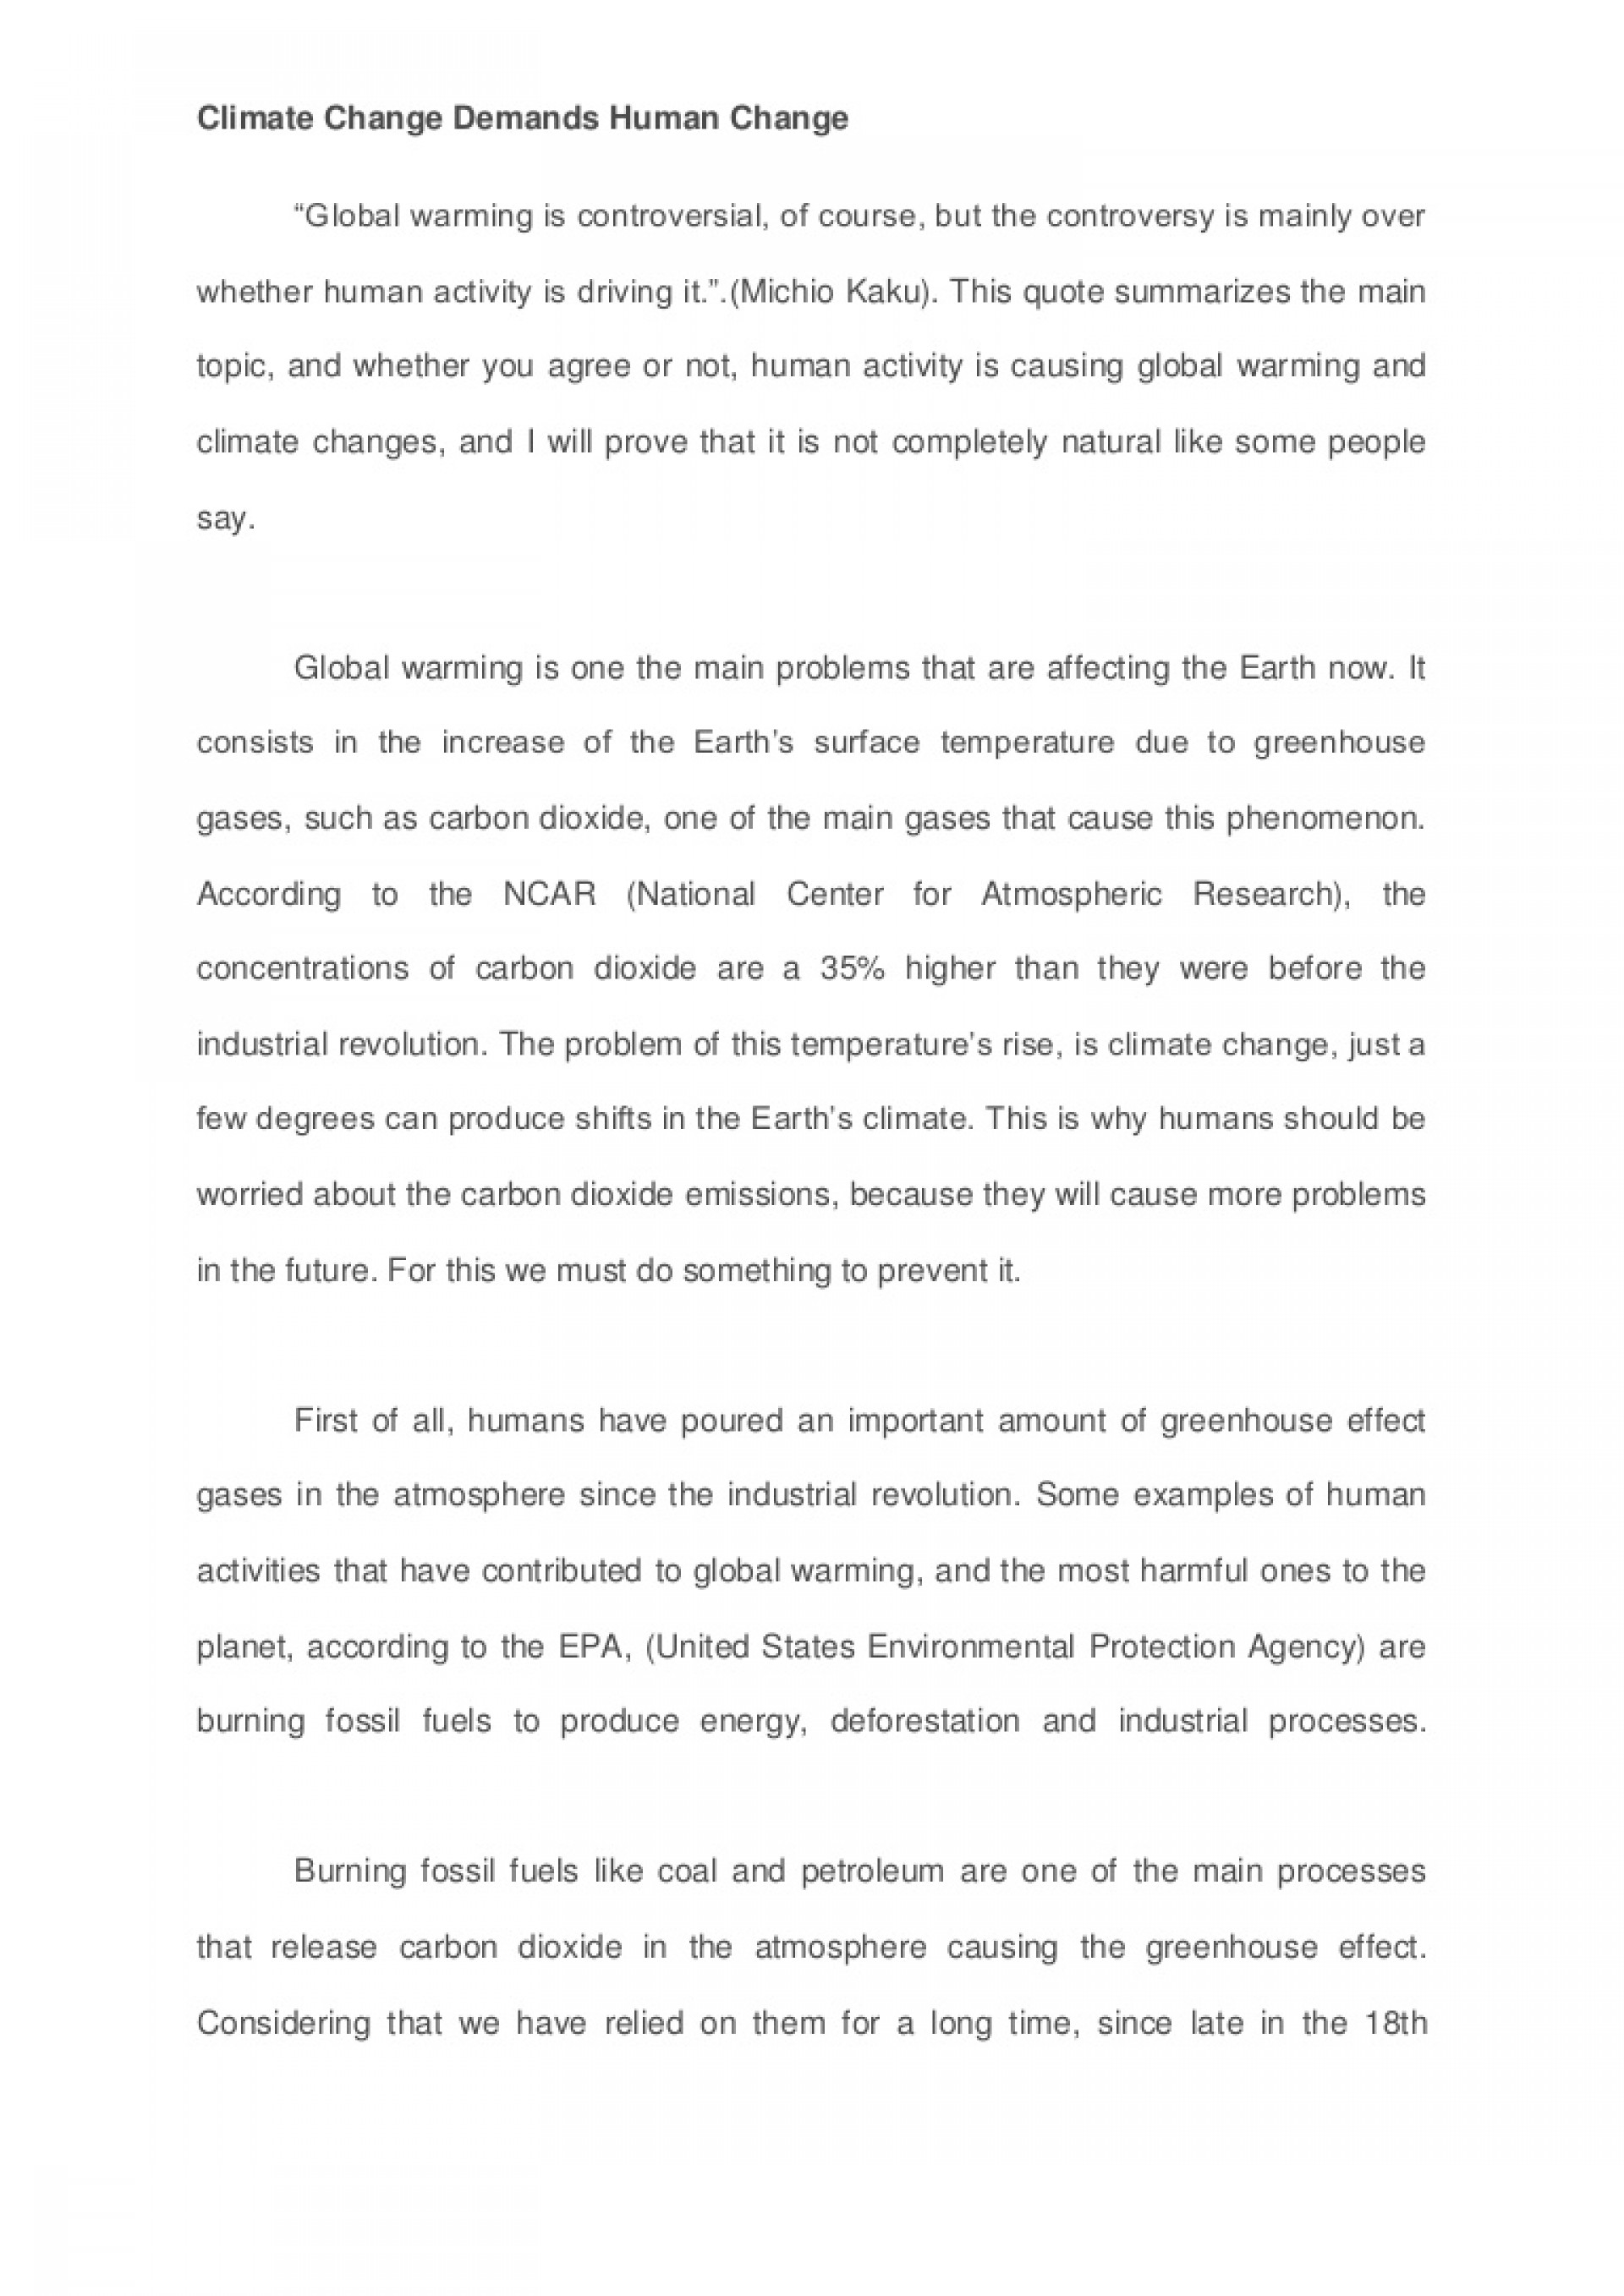 009 Change Essay Example Is Global Climate Man Made Study Percent Agreement Oyarce Esuessayclimatechangedemandshumanchange Lva1 App6892 Thumbn Persuasive Awesome Topics The World Contest Titles 1920